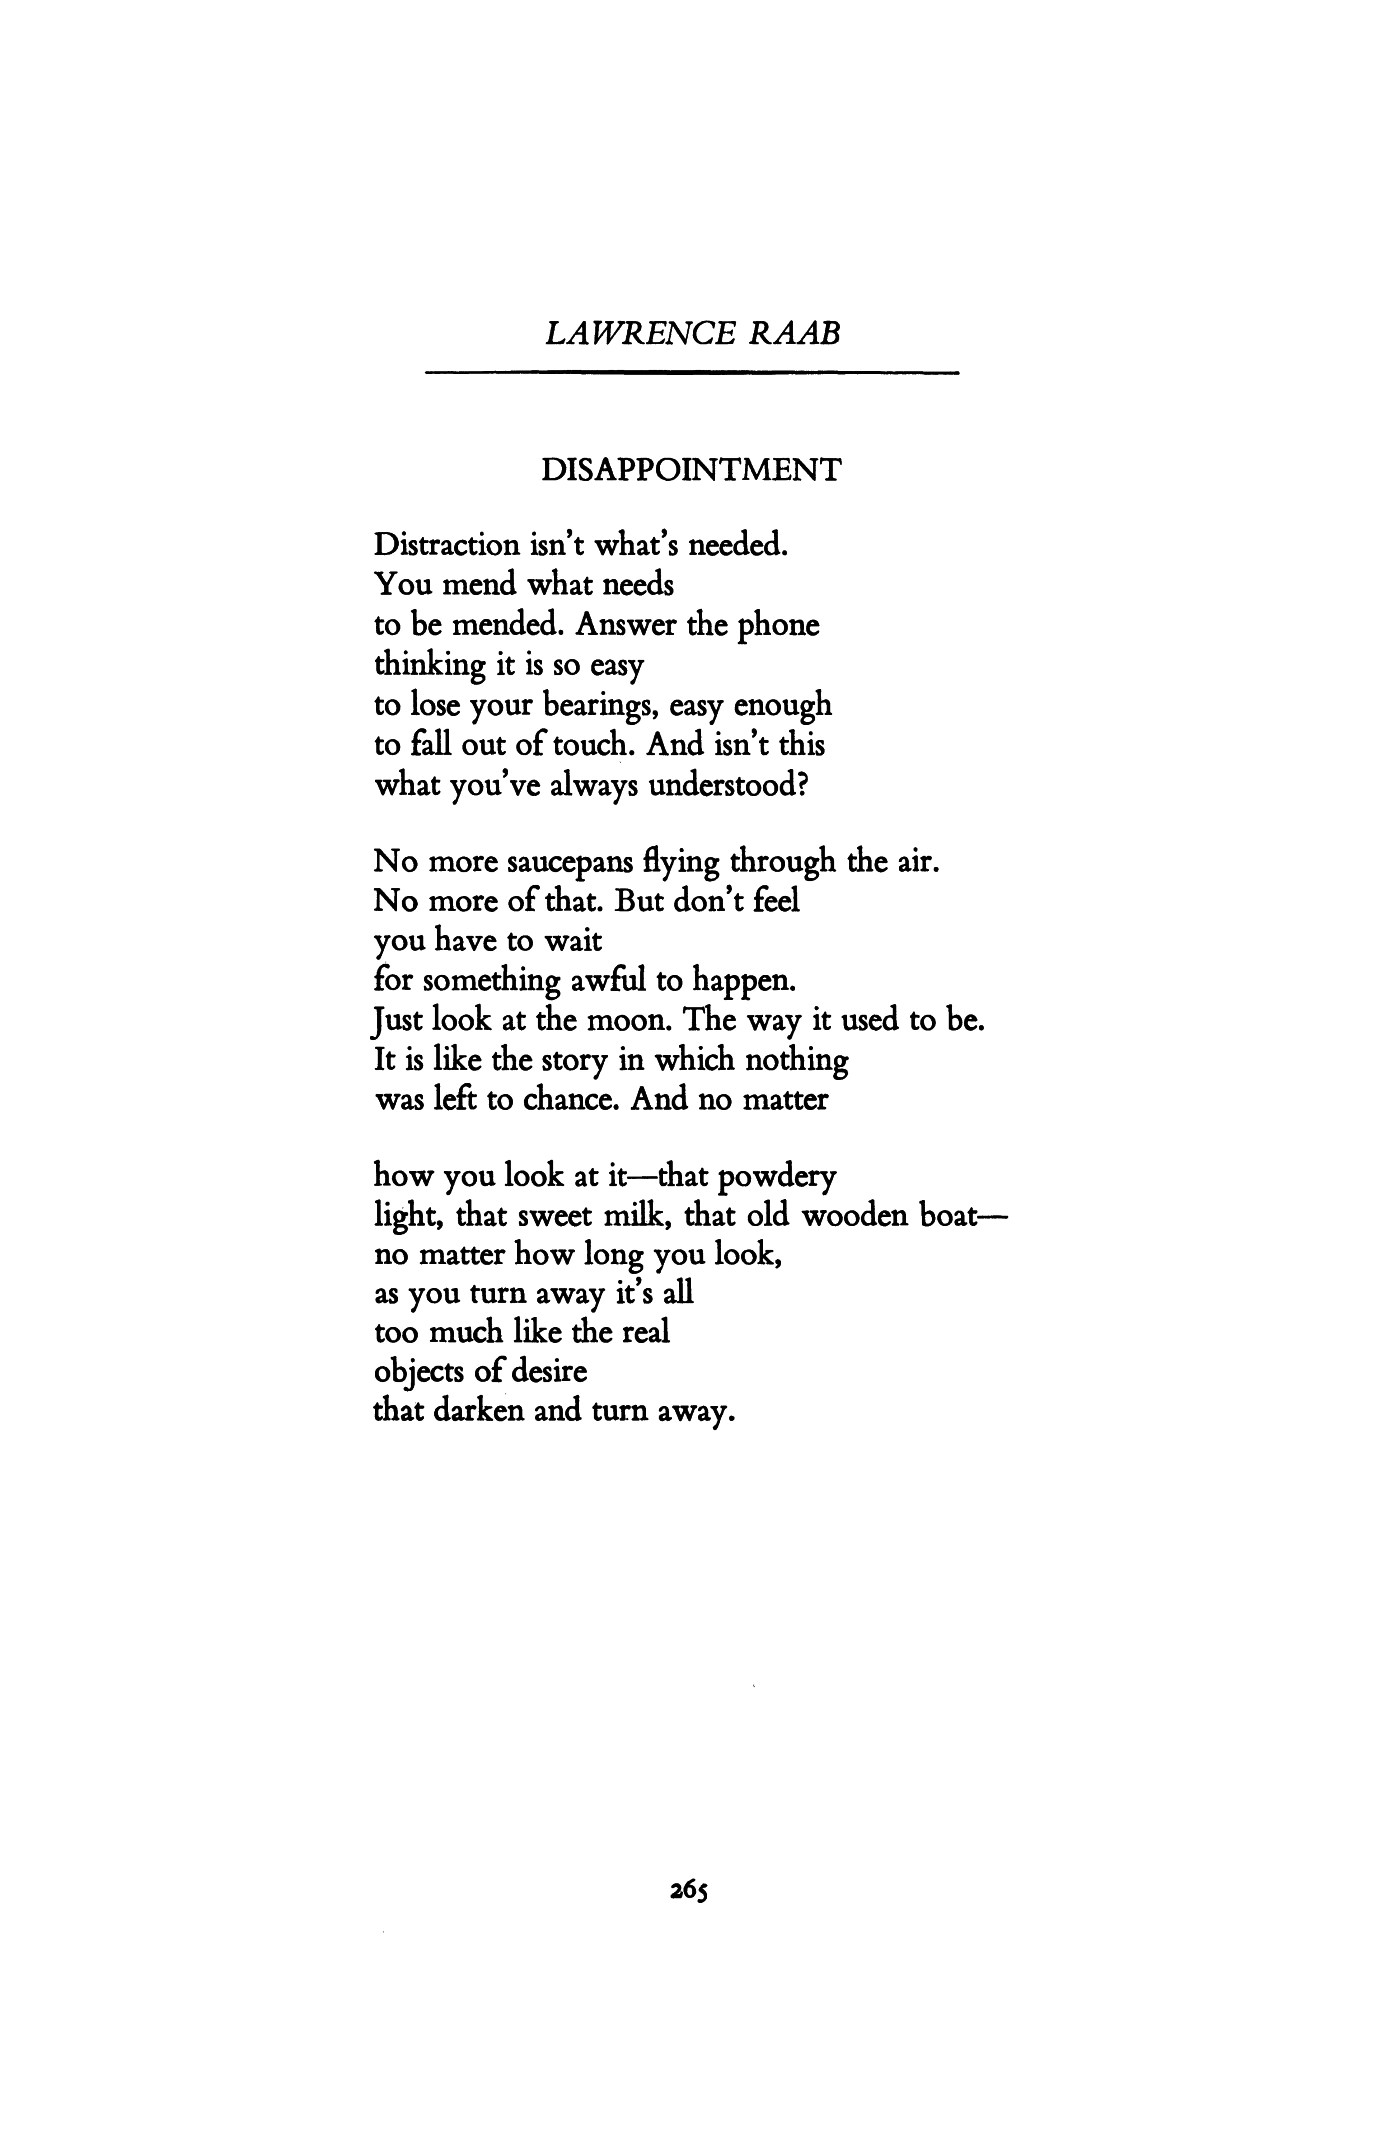 the dissatisfaction poem